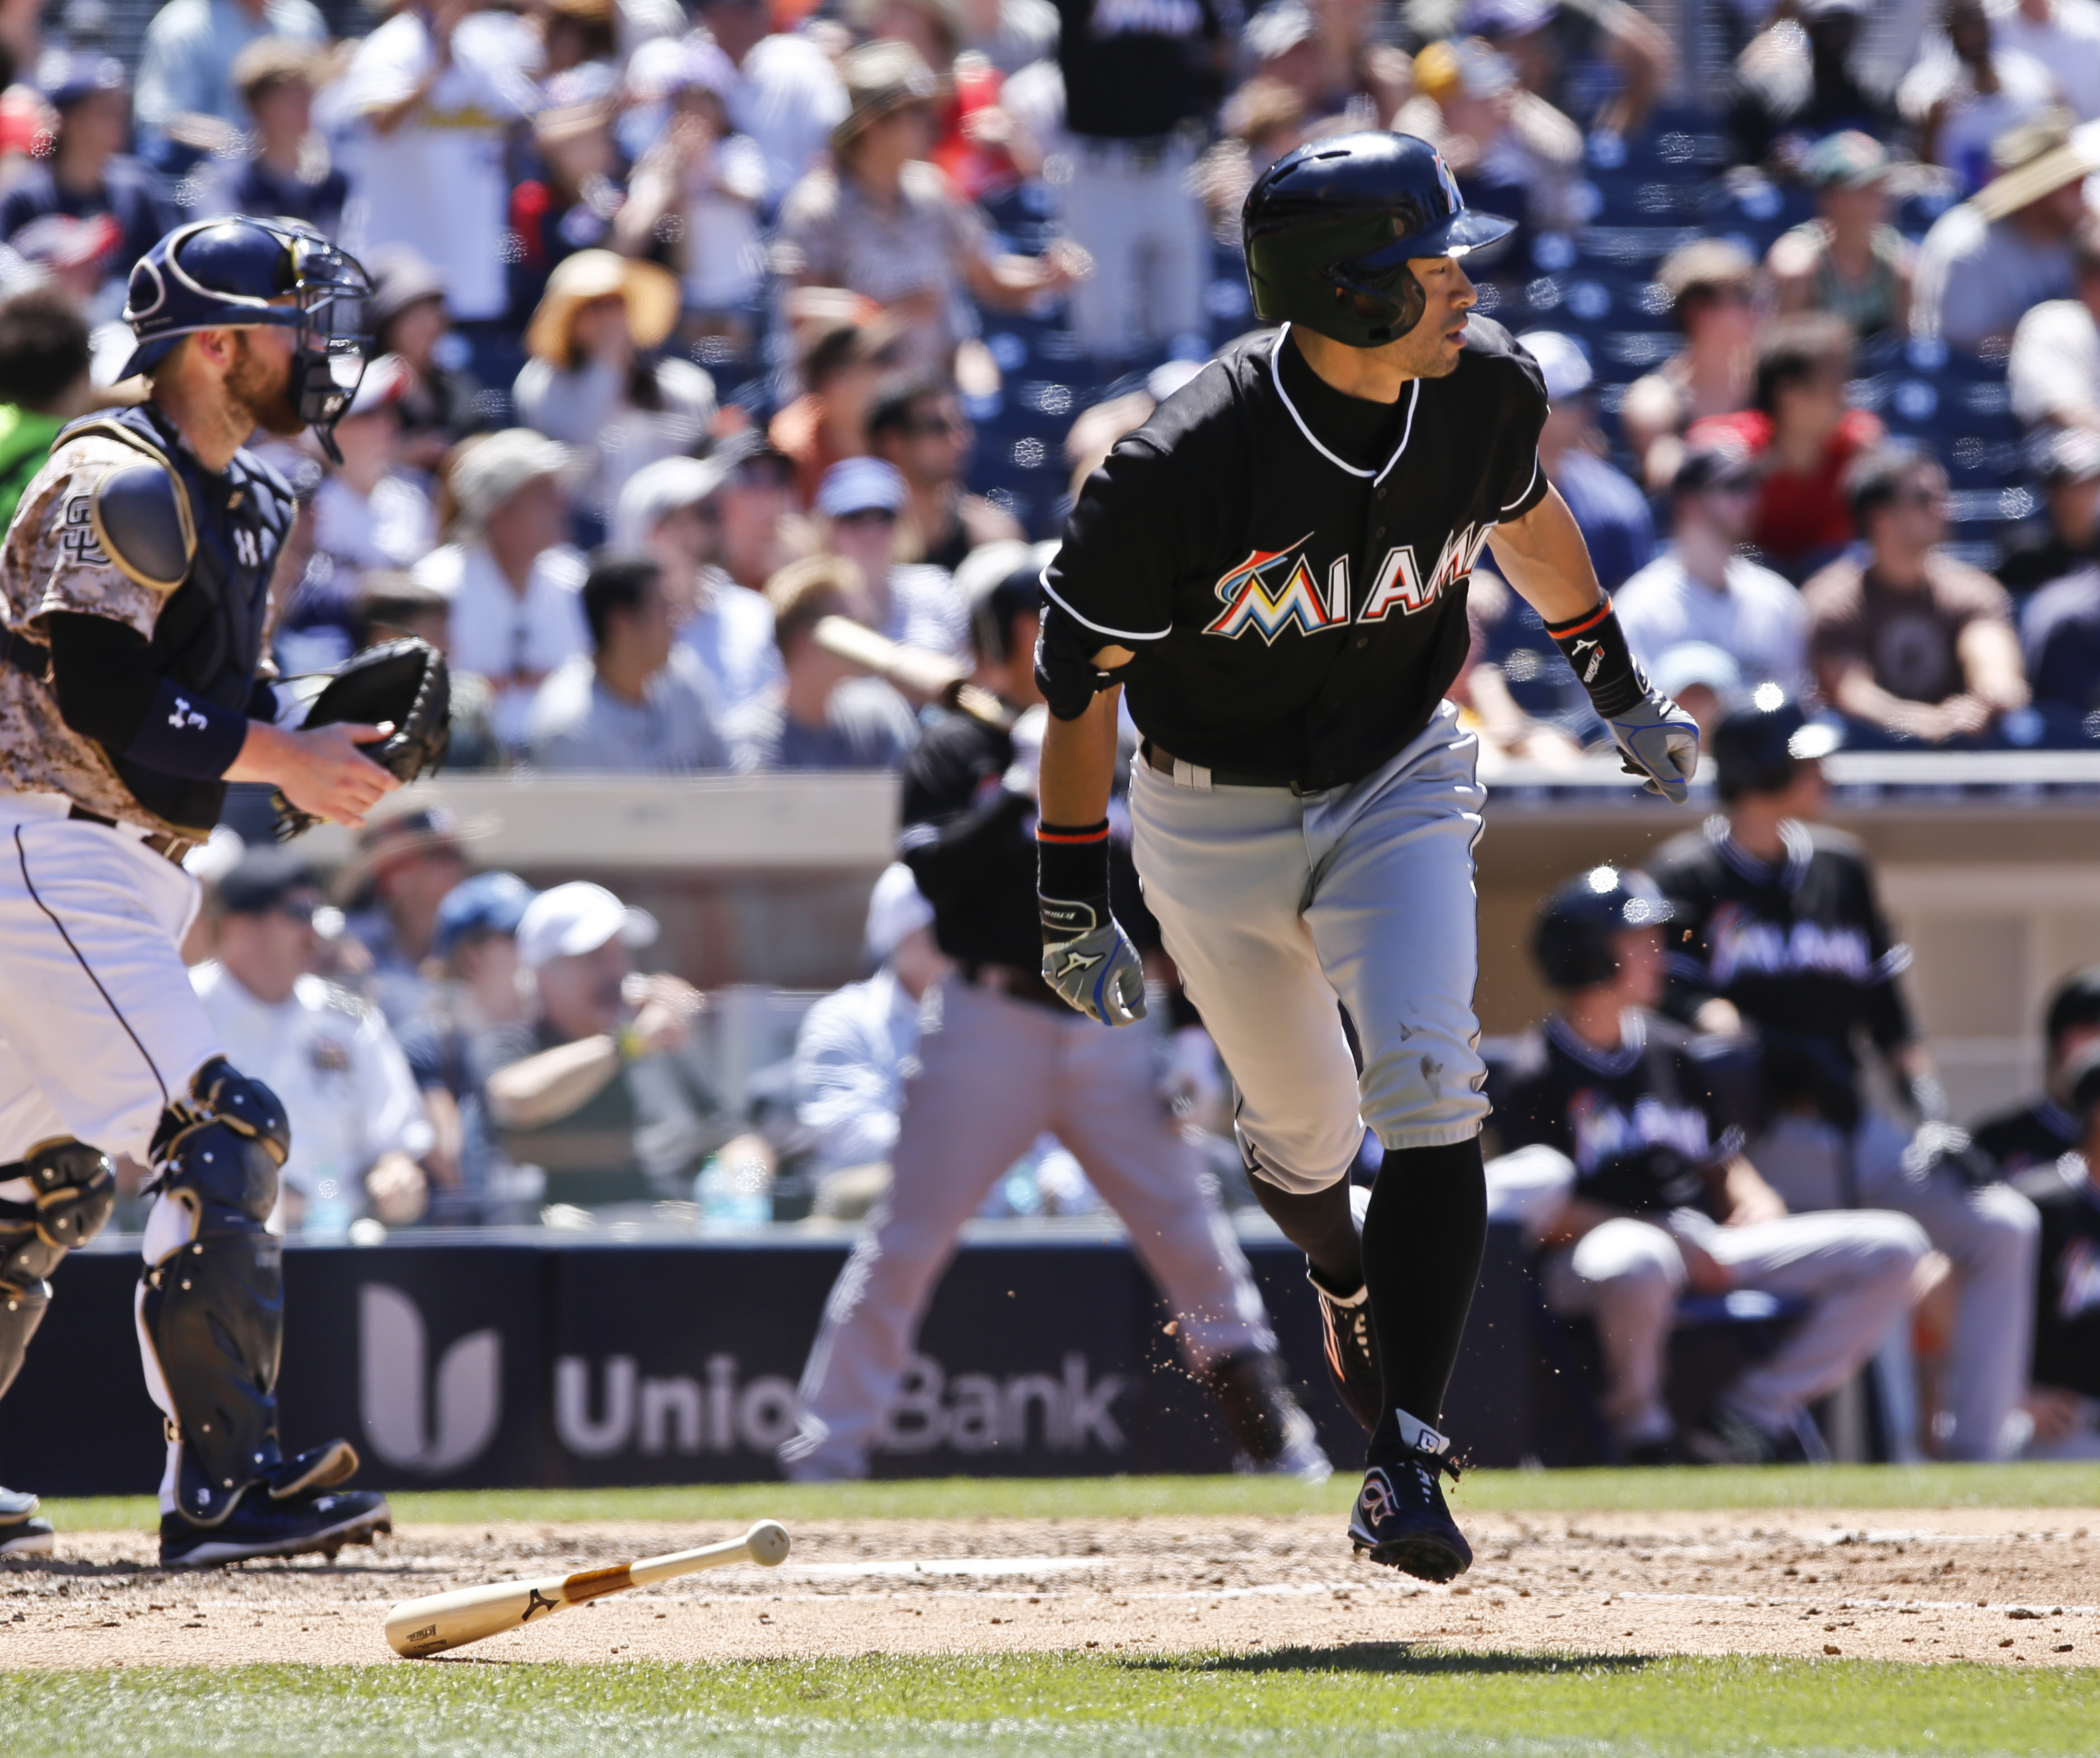 Miami Marlins' Ichiro Susuki watches his sacrifice fly to left field that scored J.T. Realmuto from third base against the San Diego Padres during the fifth inning in a baseball game Sunday, July 26, 2015, in San Diego.  (AP Photo/Don Boomer)